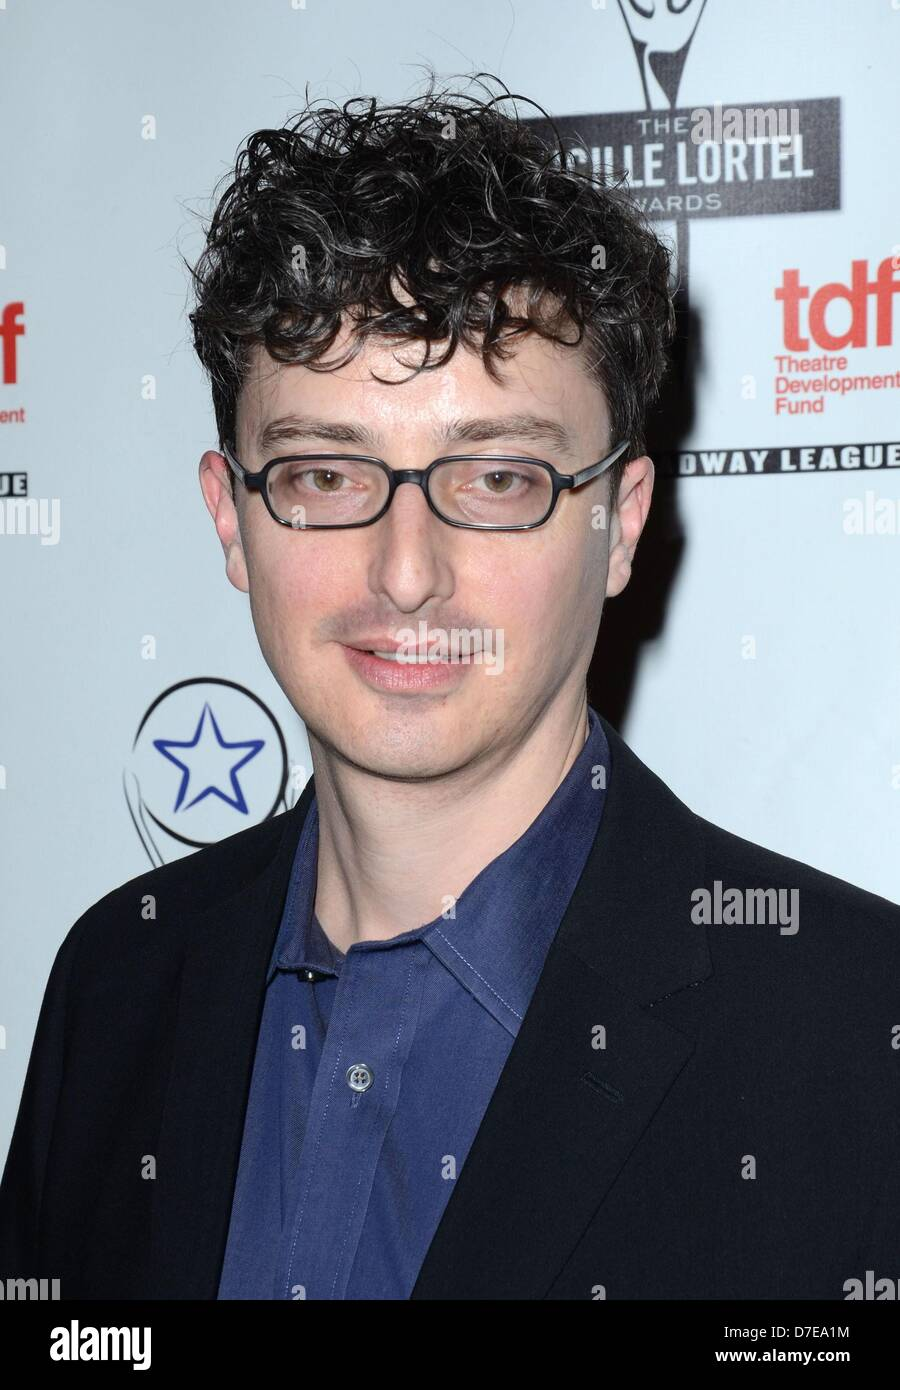 New York, USA. 5th May 2013. Beowulf Boritt at arrivals for The 28th Lucille Lortel Awards, NYU Skirball Center, - Stock Image